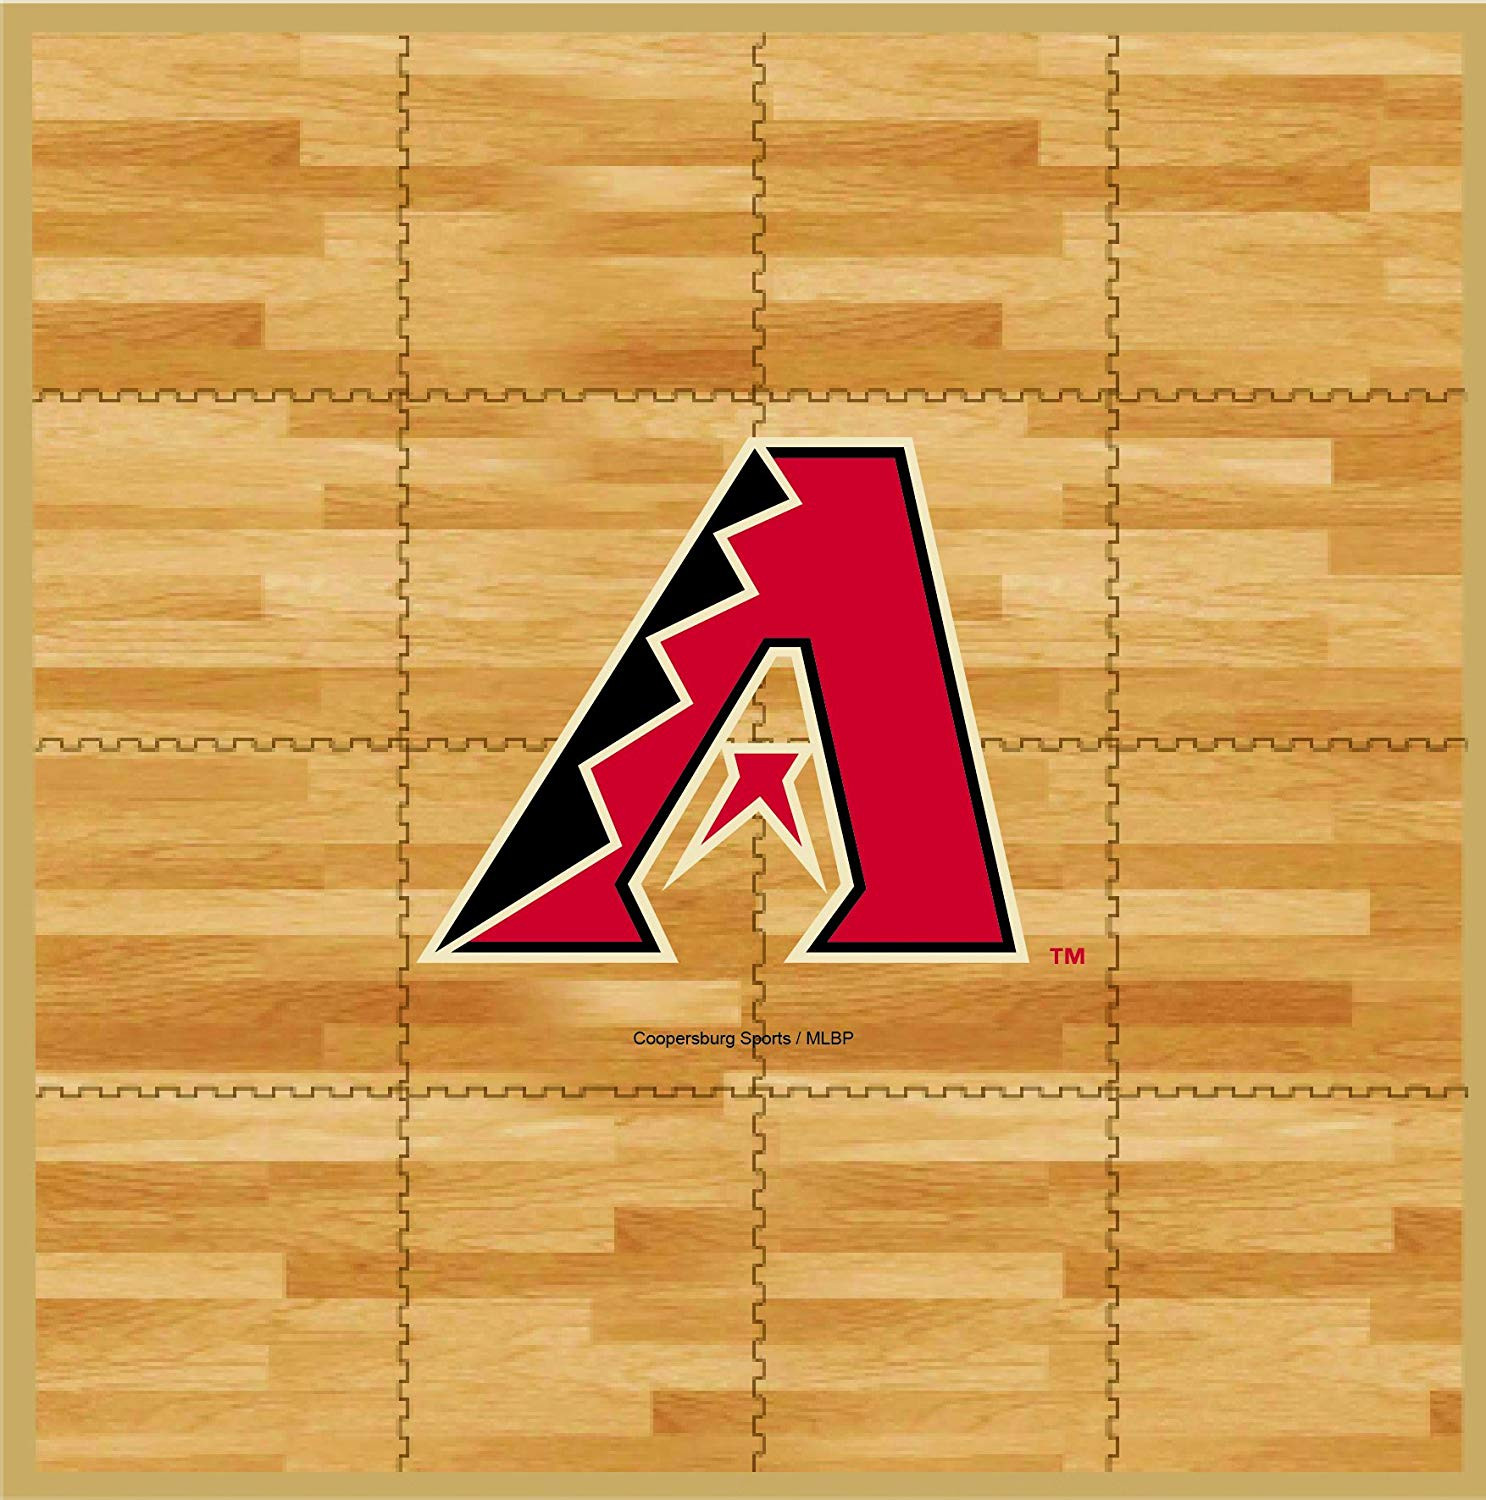 Hardwood Flooring Prices toronto Of Amazon Com Coopersburg Mlb Arizona Diamondbacks Mlb 8 Foot by 8 within Amazon Com Coopersburg Mlb Arizona Diamondbacks Mlb 8 Foot by 8 Foot Fan Floor Tan 8 Foot X 8 Foot Sports Outdoors